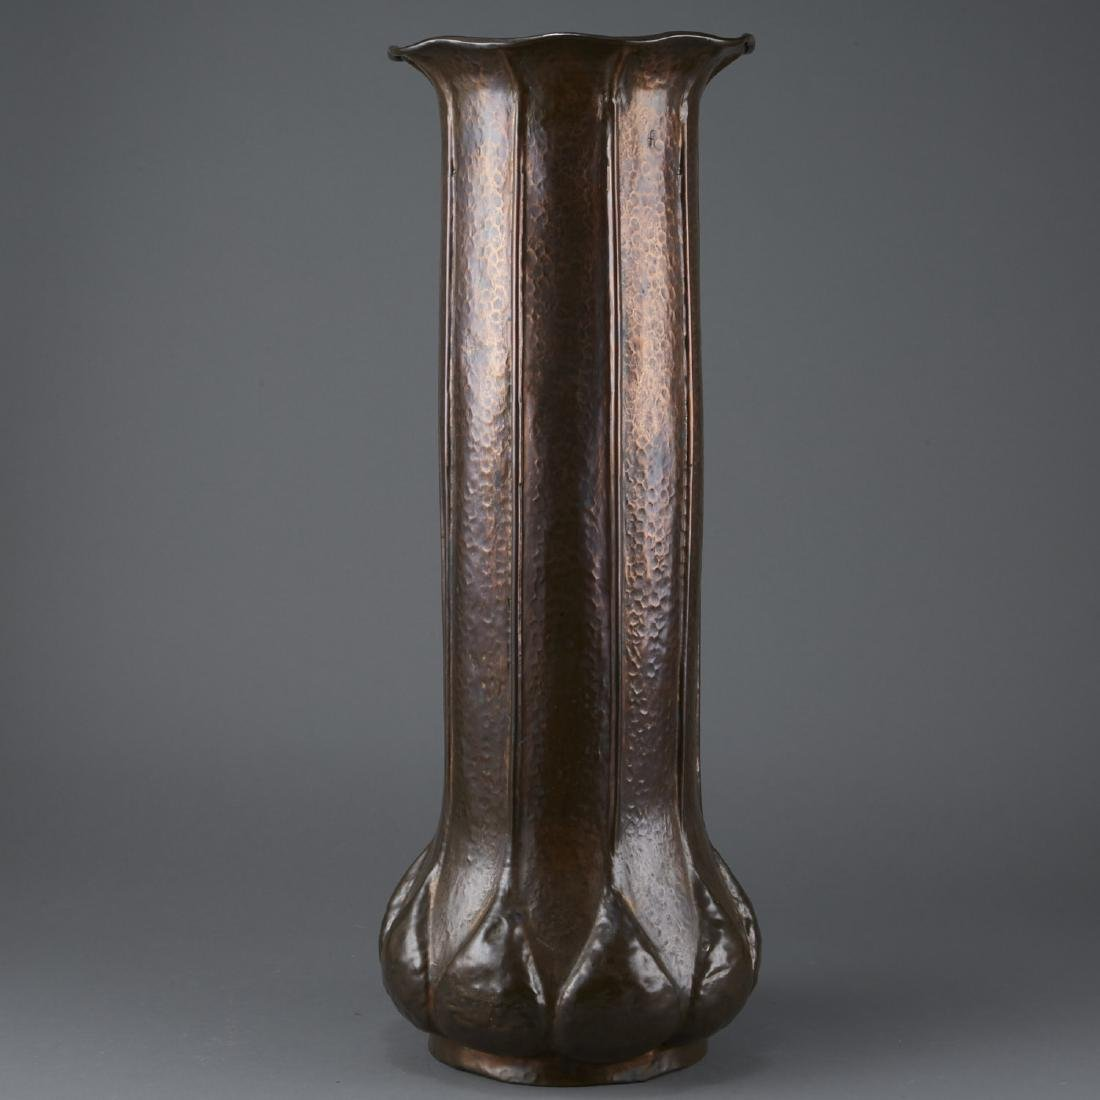 Hammered Copper Arts and Crafts Umbrella Stand - 3